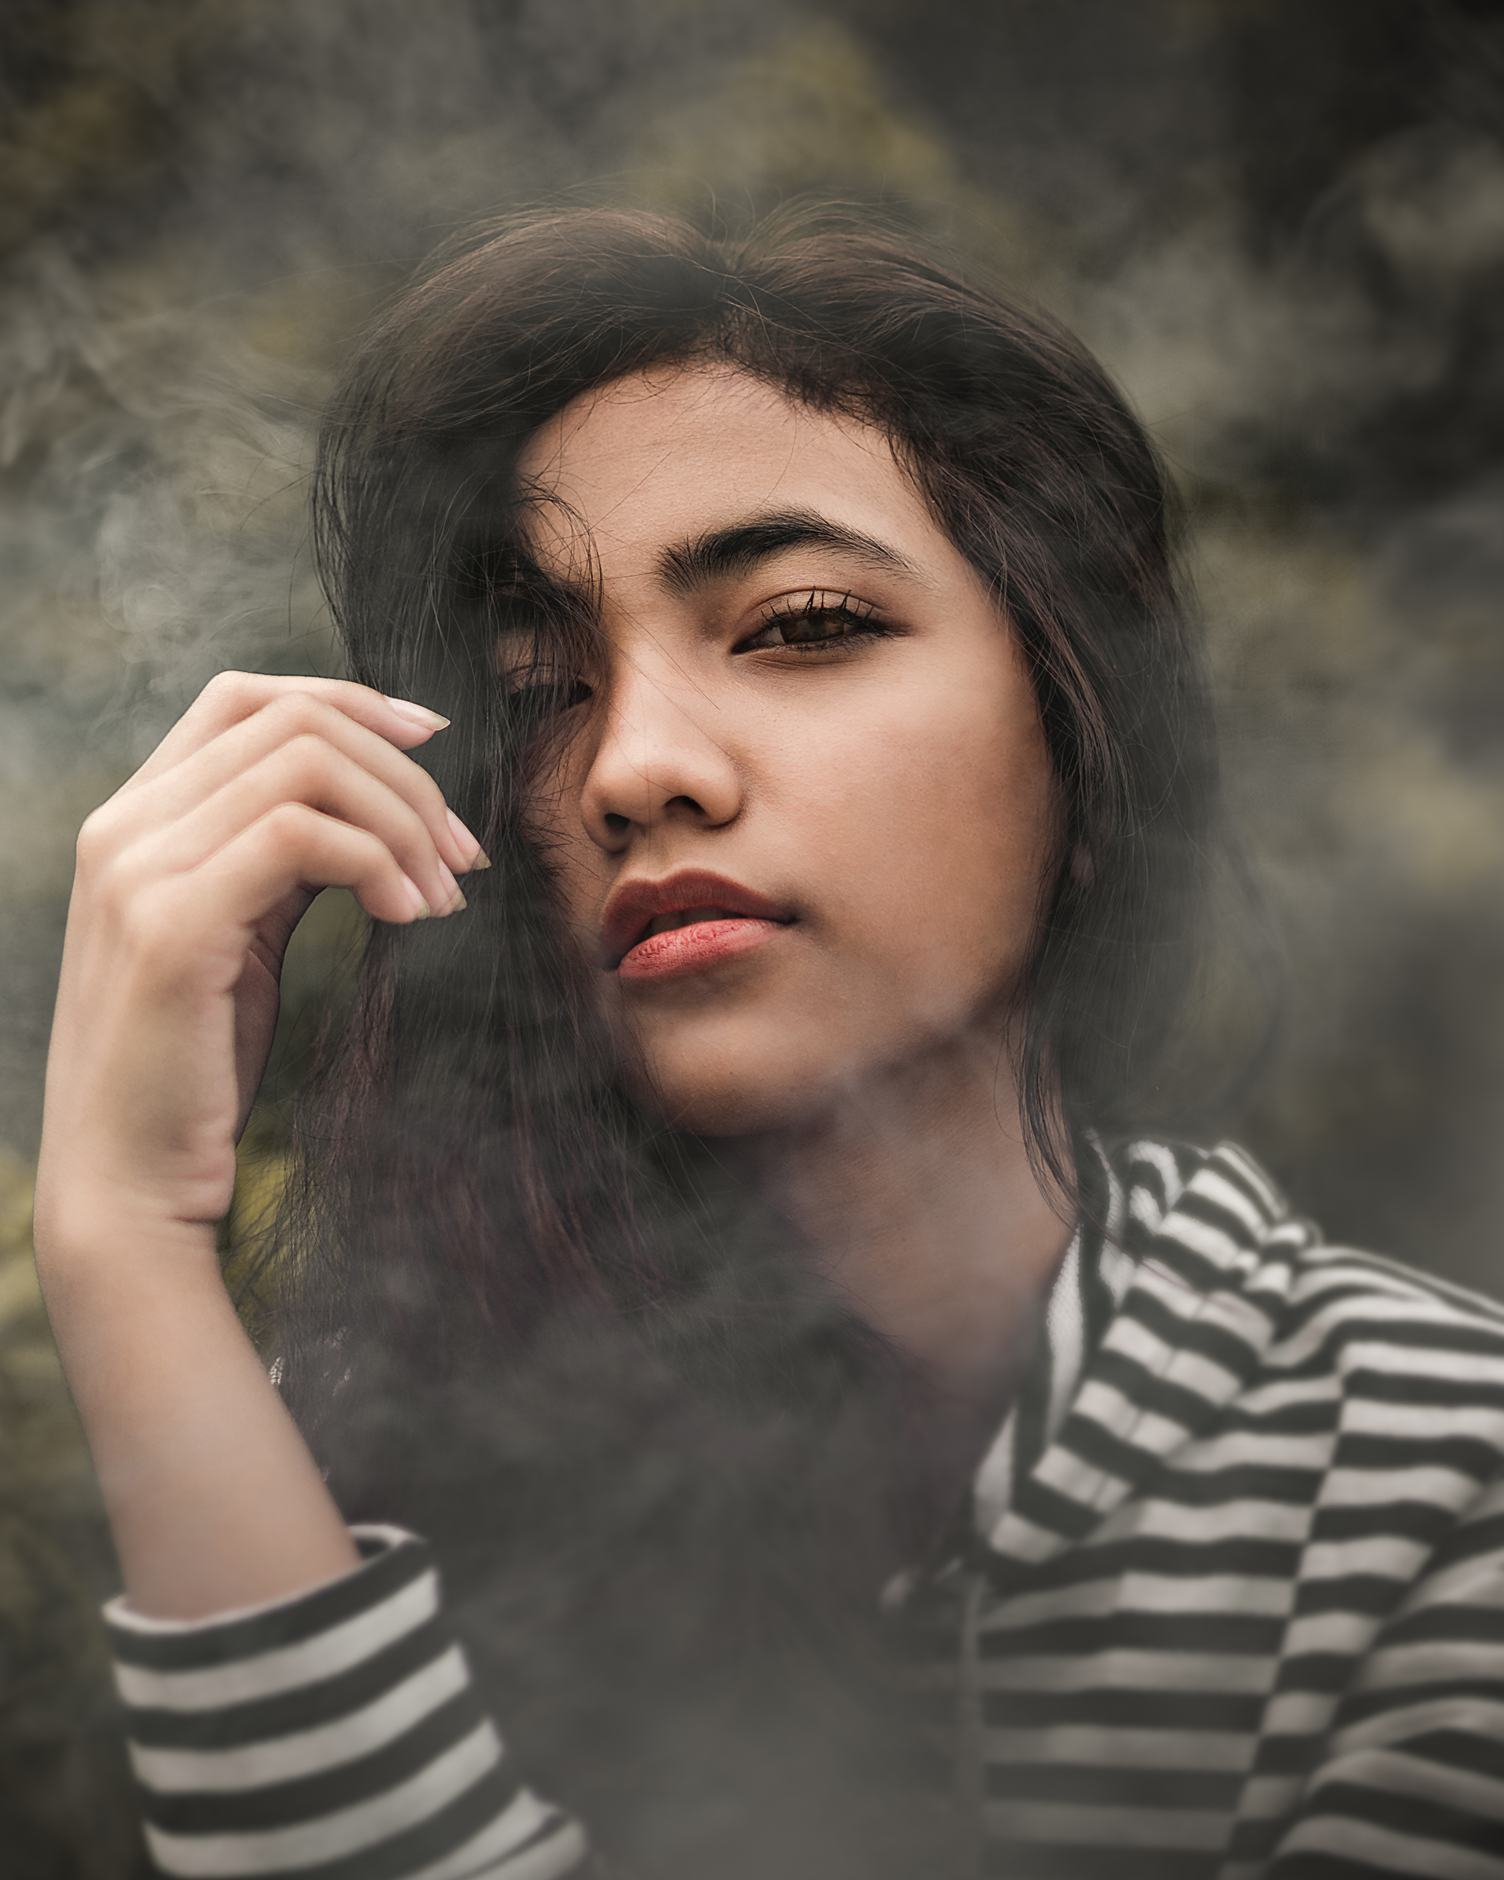 A Mysterious Portrait of an Indonesian Girl